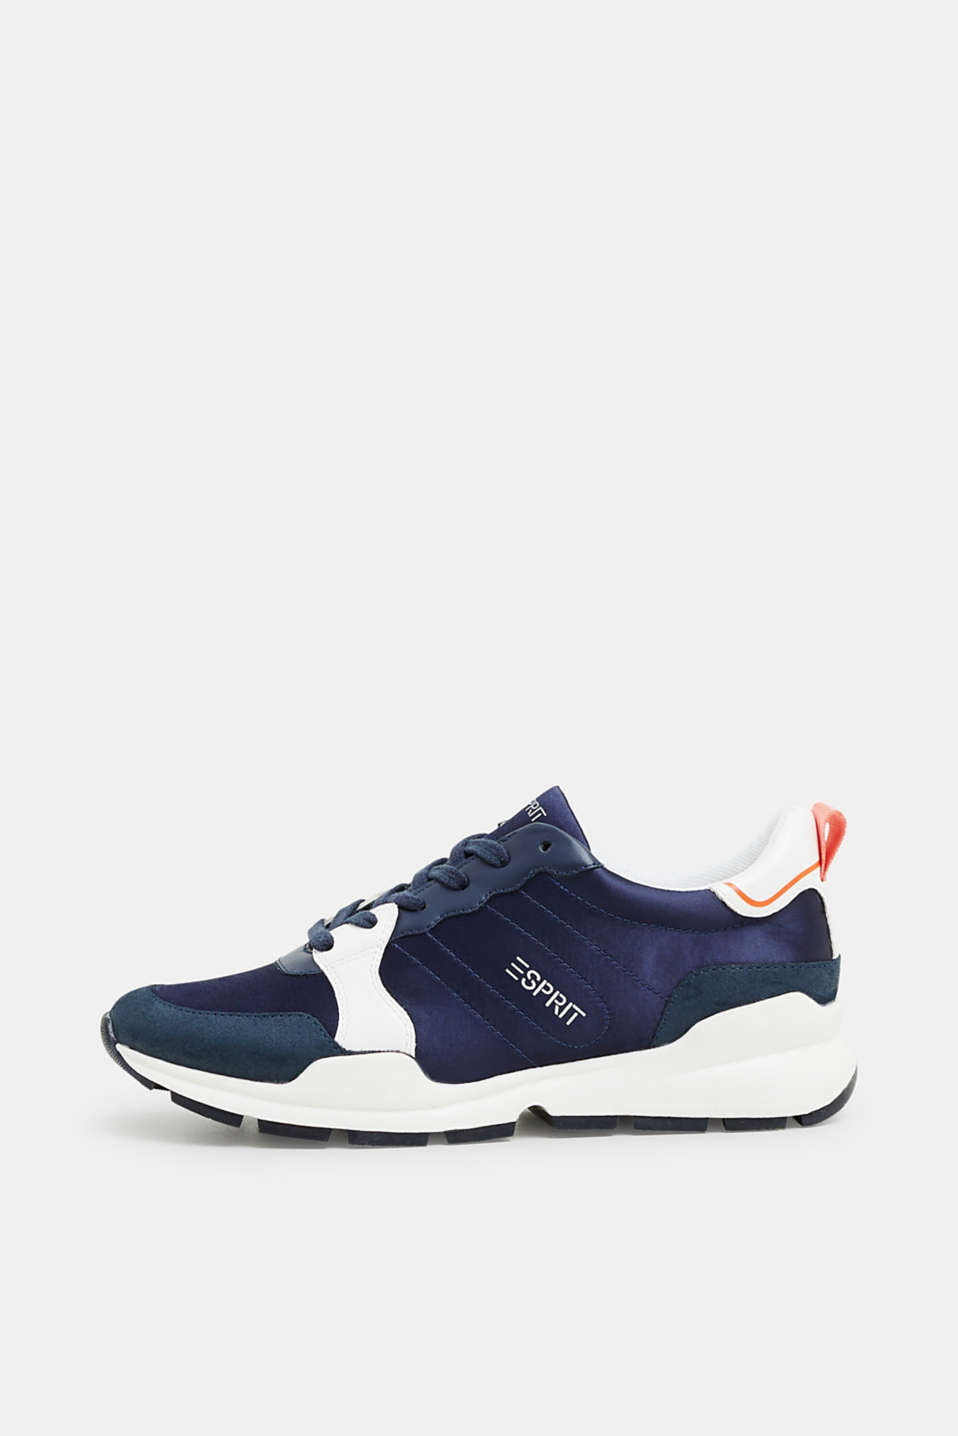 Esprit - Sneakers di tendenza in raso